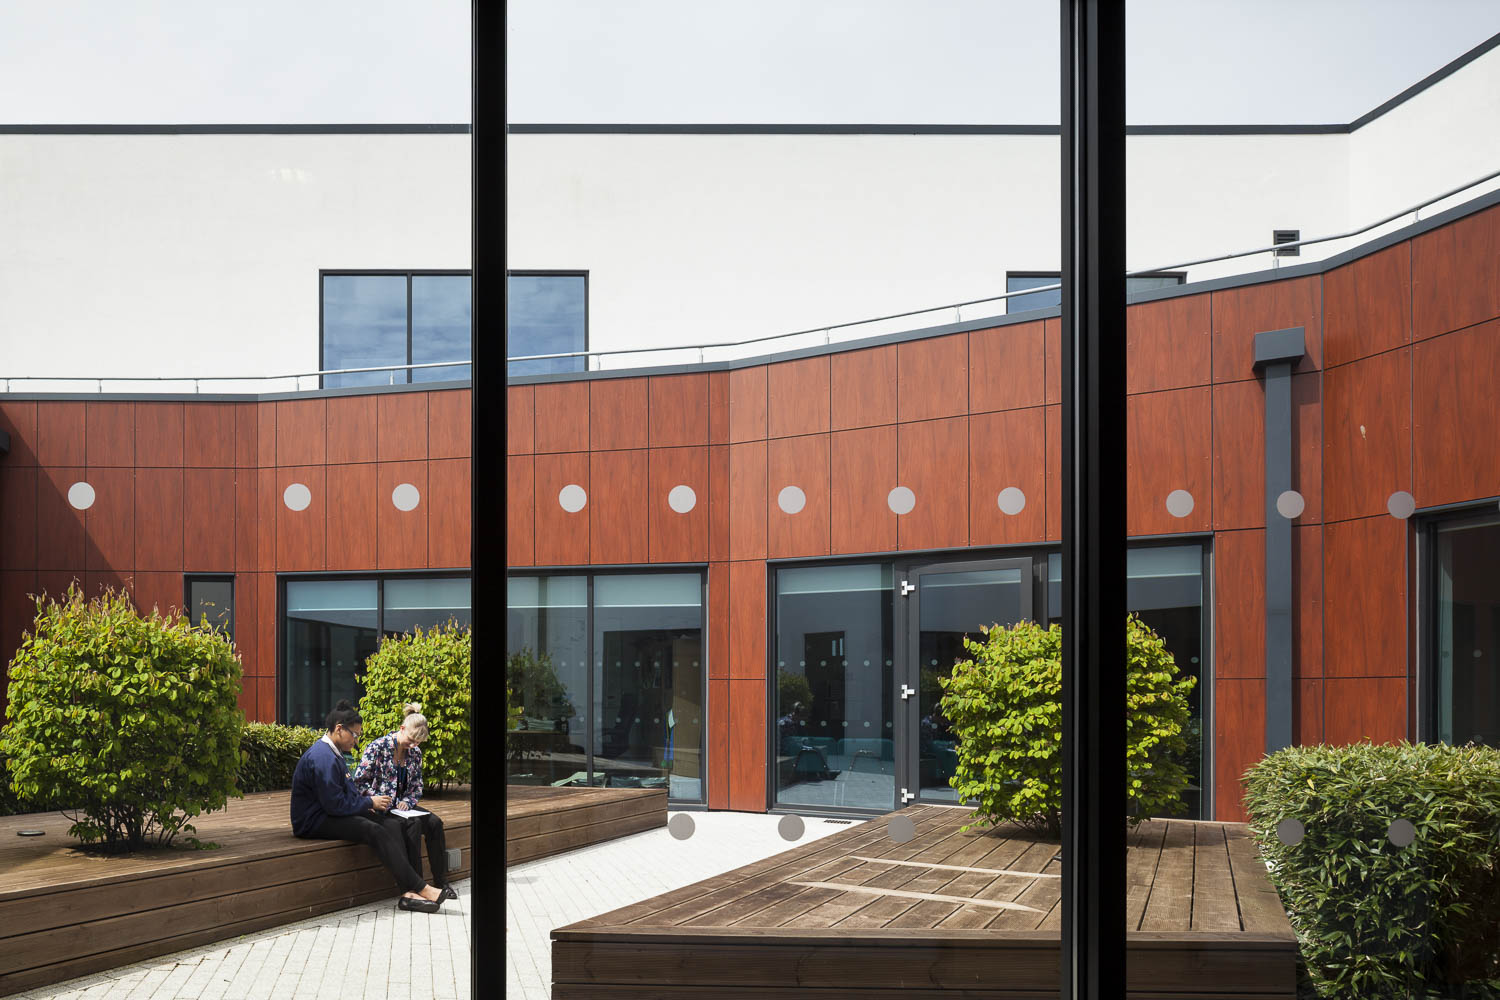 Central courtyard space